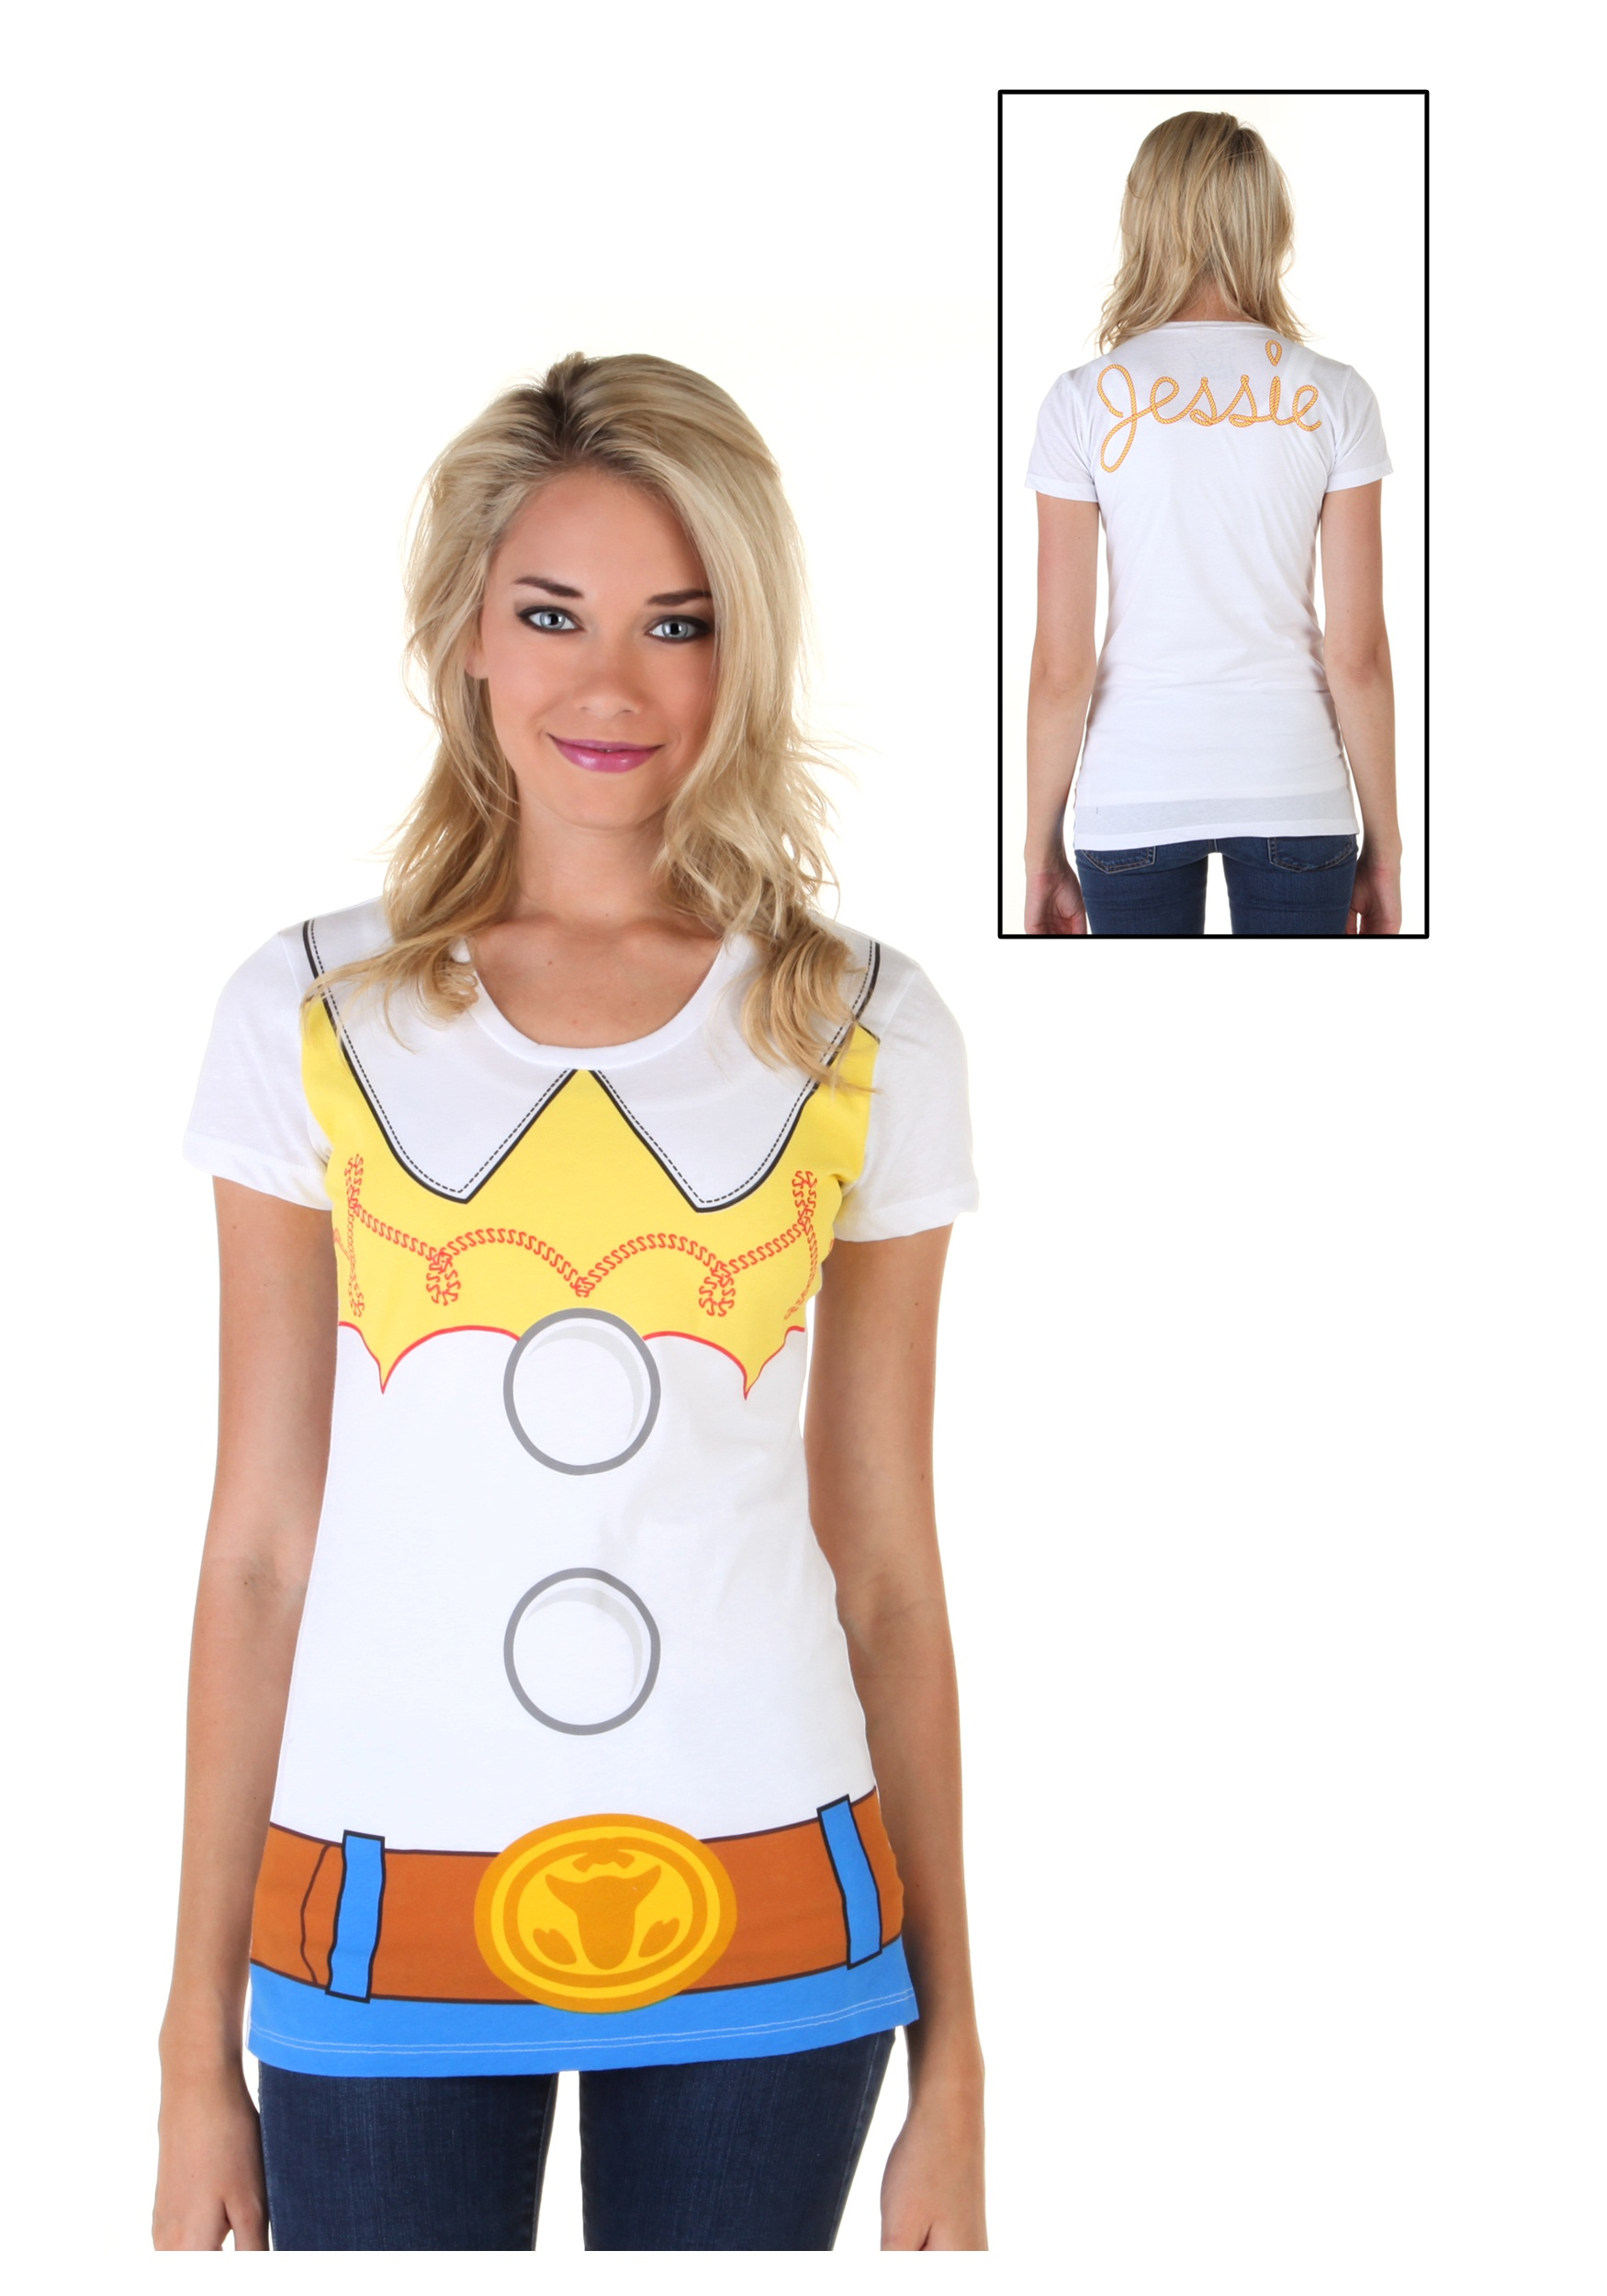 Toy Story Jessie And Woody Costumes Toy story jessie